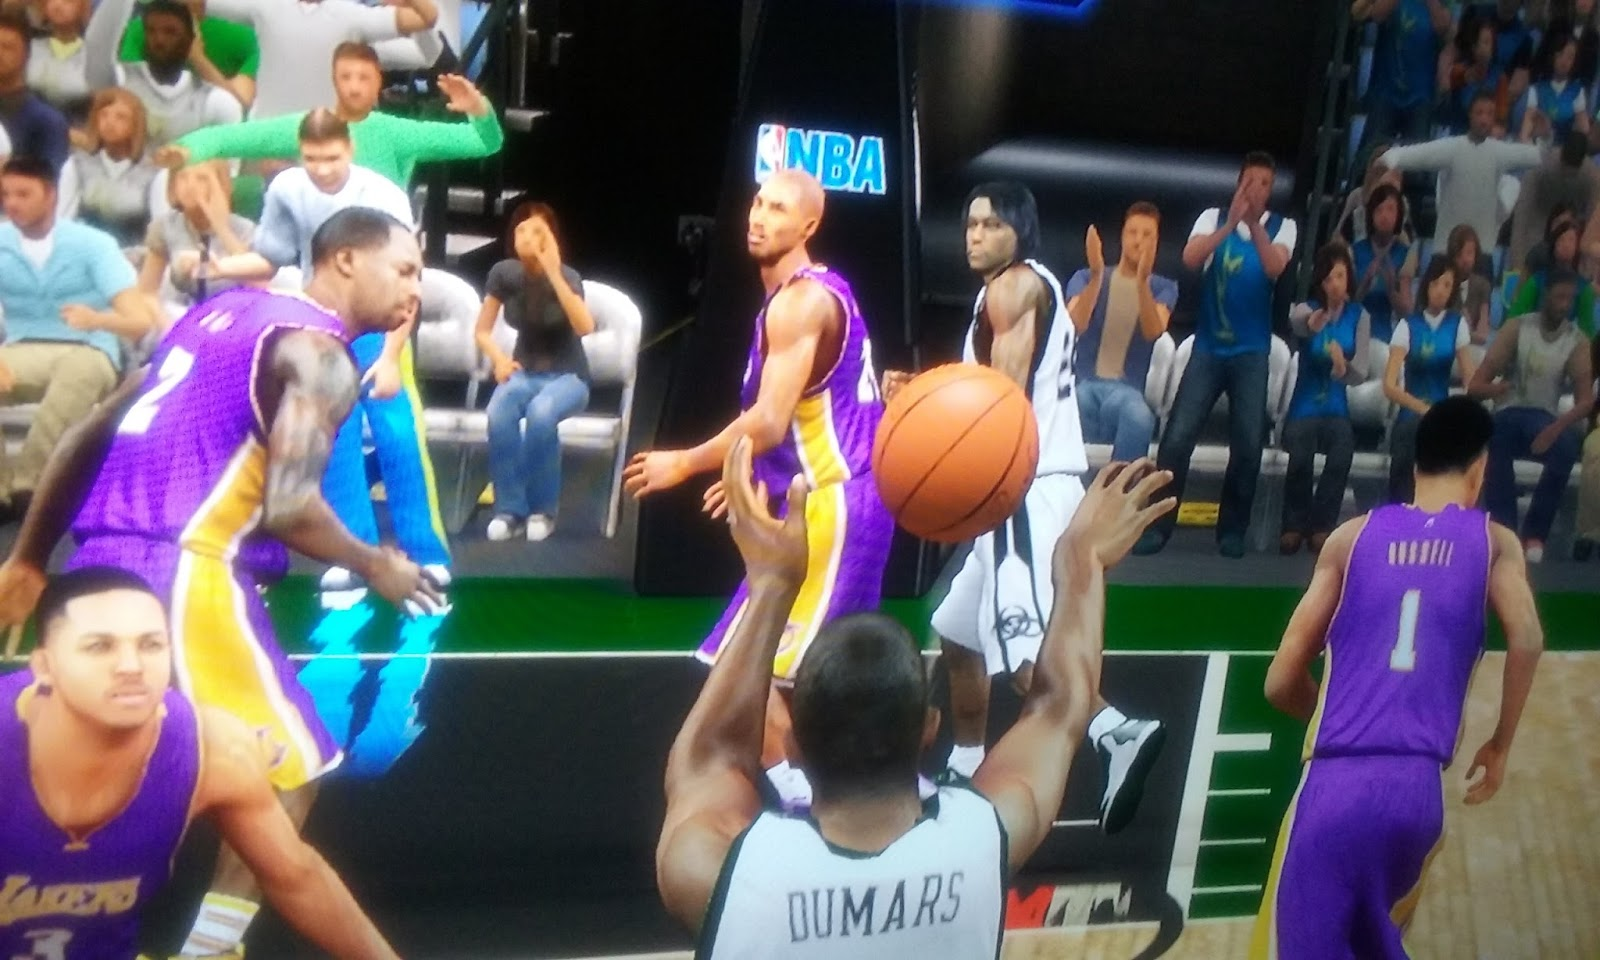 NBA 2K16-6: Roanoke Railguns, Coasting and Splashing